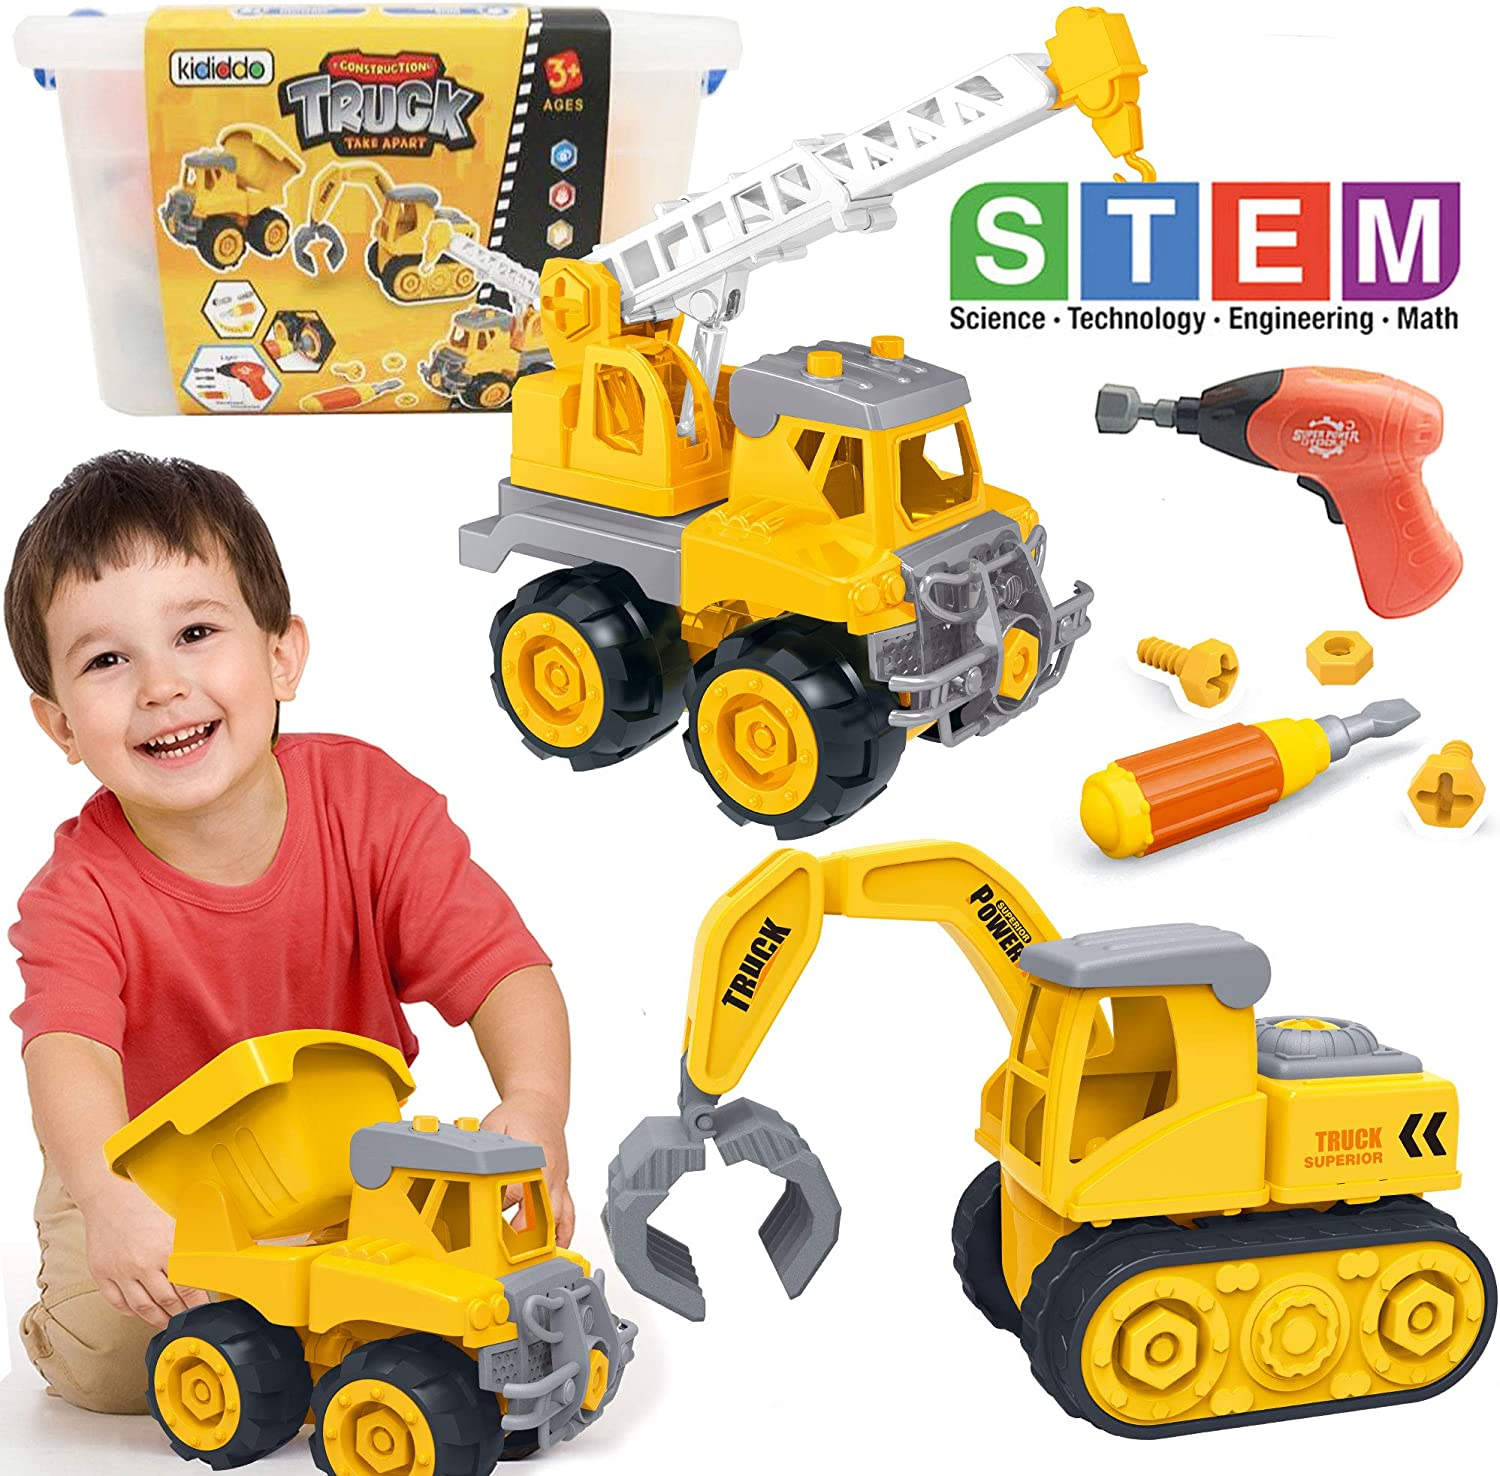 Kididdo Take Apart Truck for Boys and Girls,Set of 3 Construction Vehicles for Kids, Build a Dump Truck, Excavator and Crane, Take a Part Truck Toy with Drill and Tools for Toddlers 2-5 Years Old 81CIasQxbKL